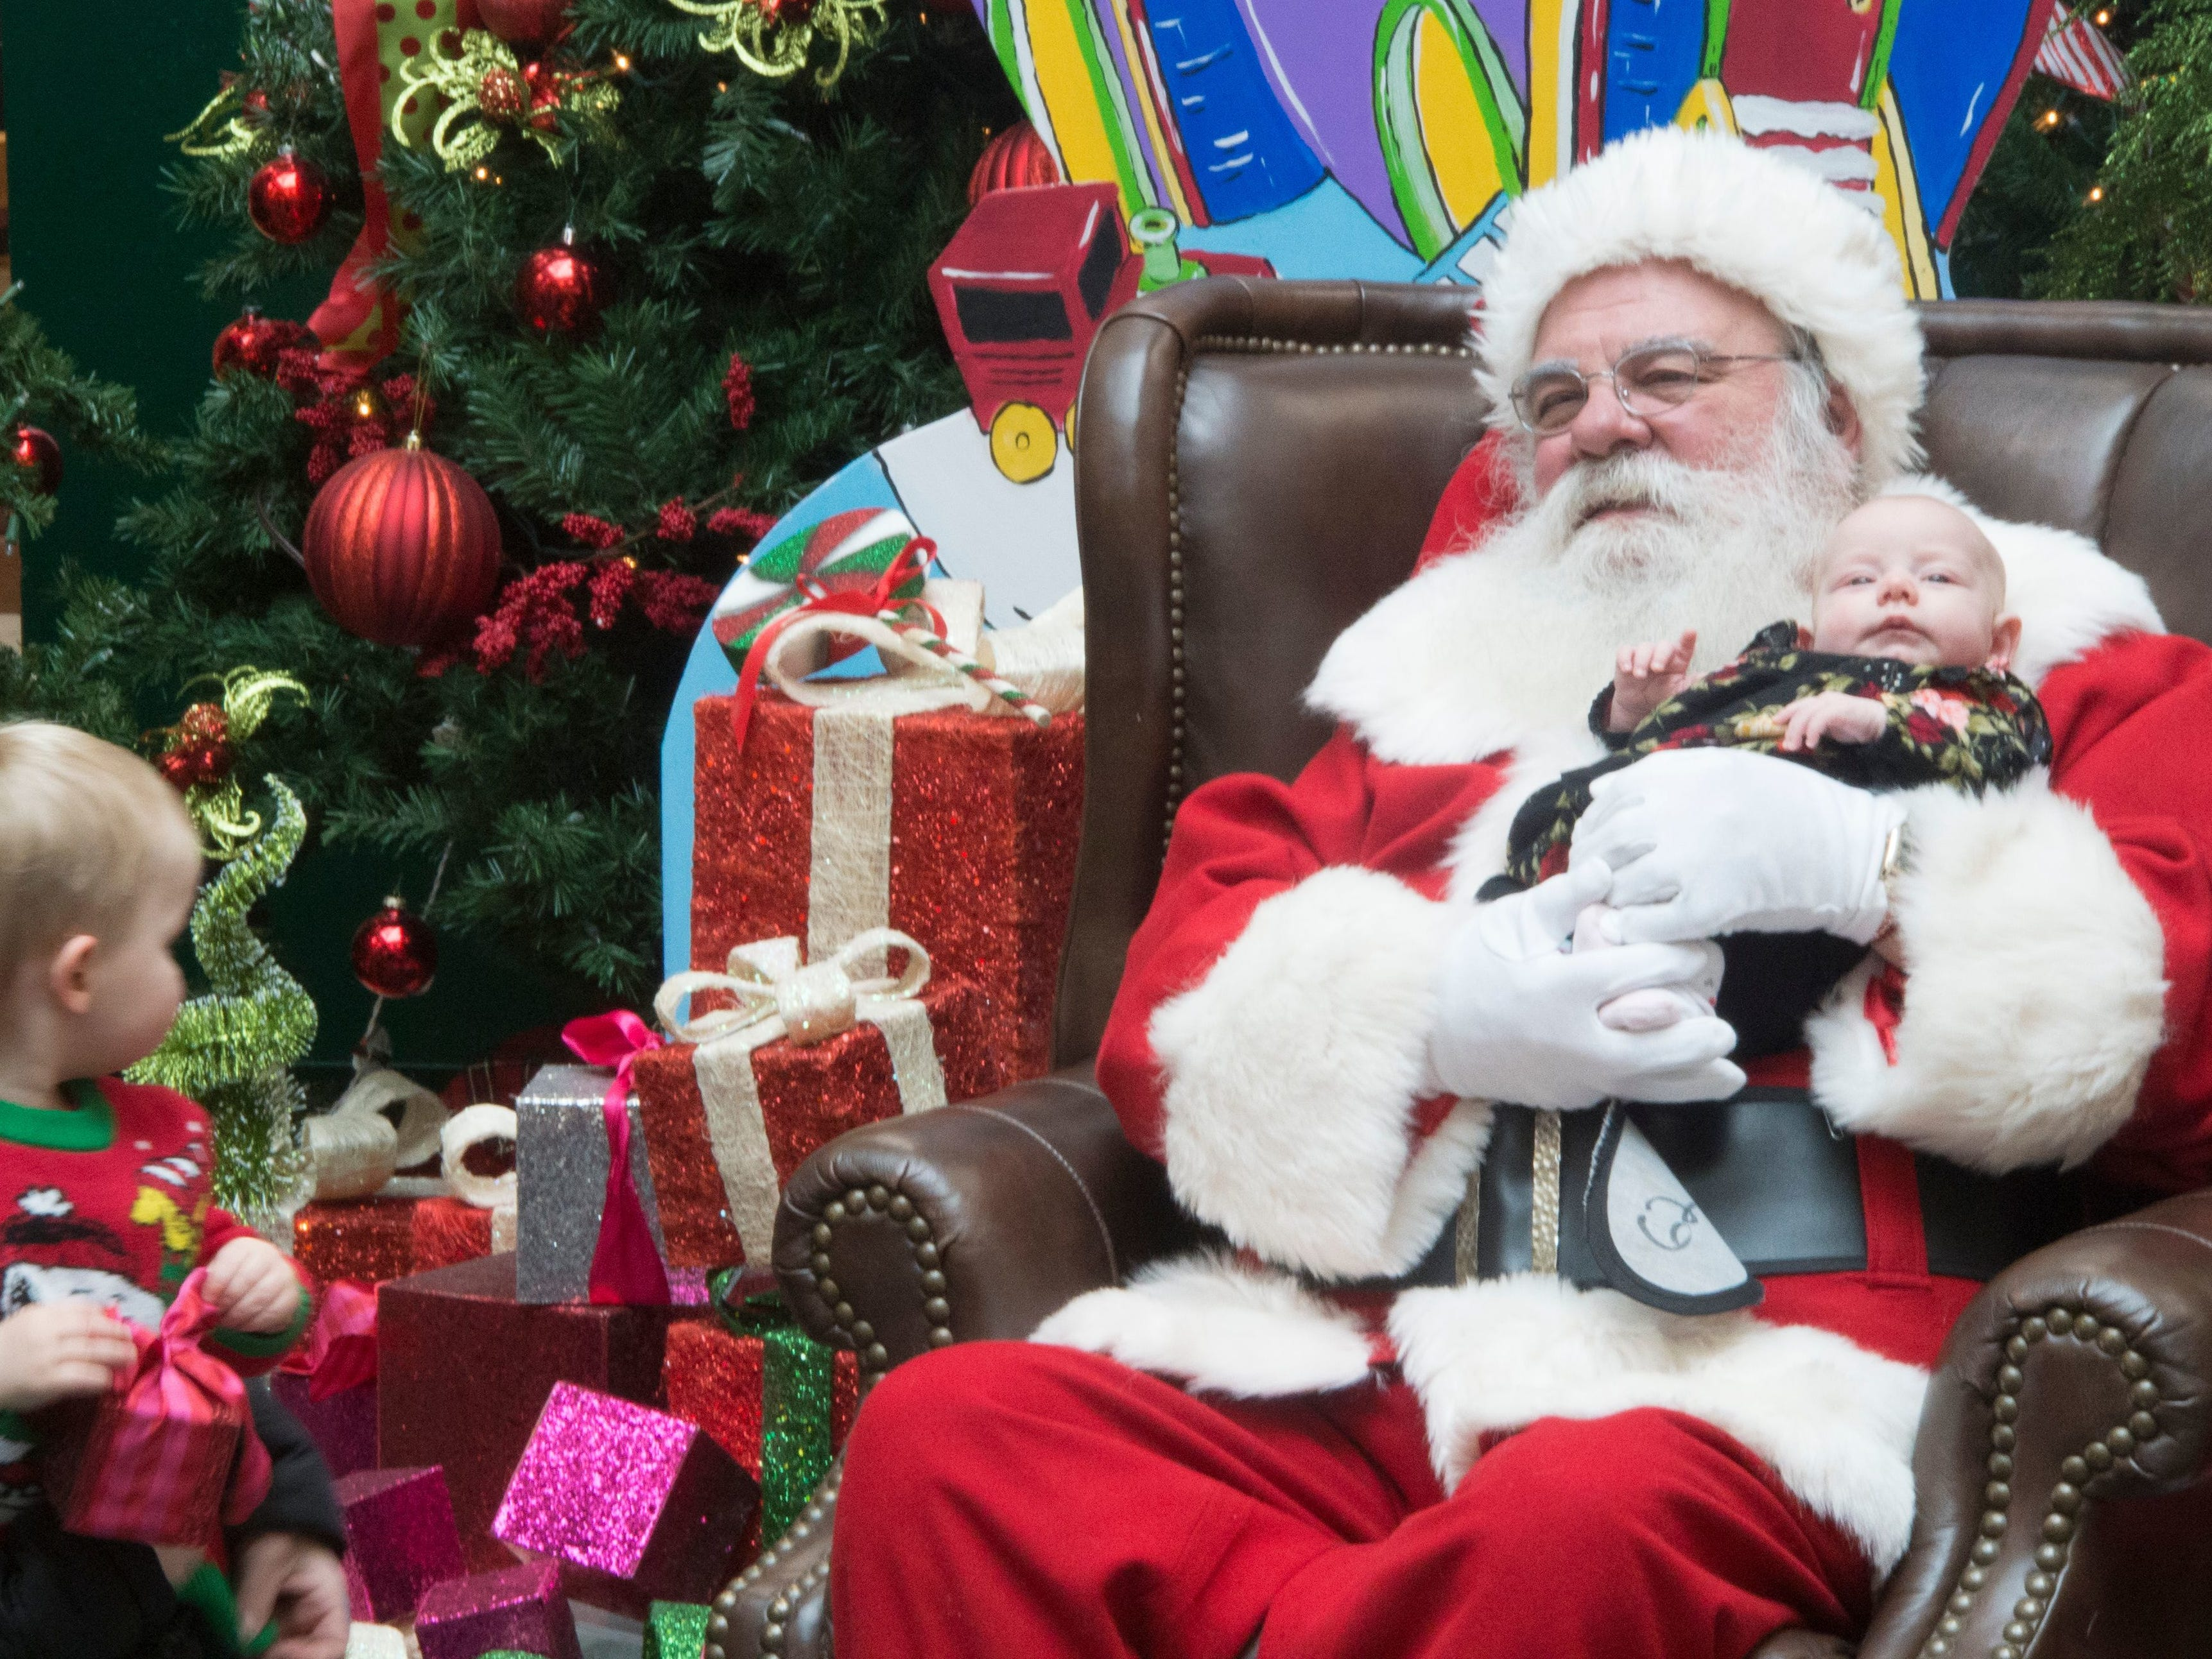 In 2017, Santa holds Annika Tompkins while mom Sheila Darrow tries to persuade her son, Logan Tompkins, 2, to join the picture. Logan stood just close enough to Santa for a photo, but wasn't willing to go too far from his mom.